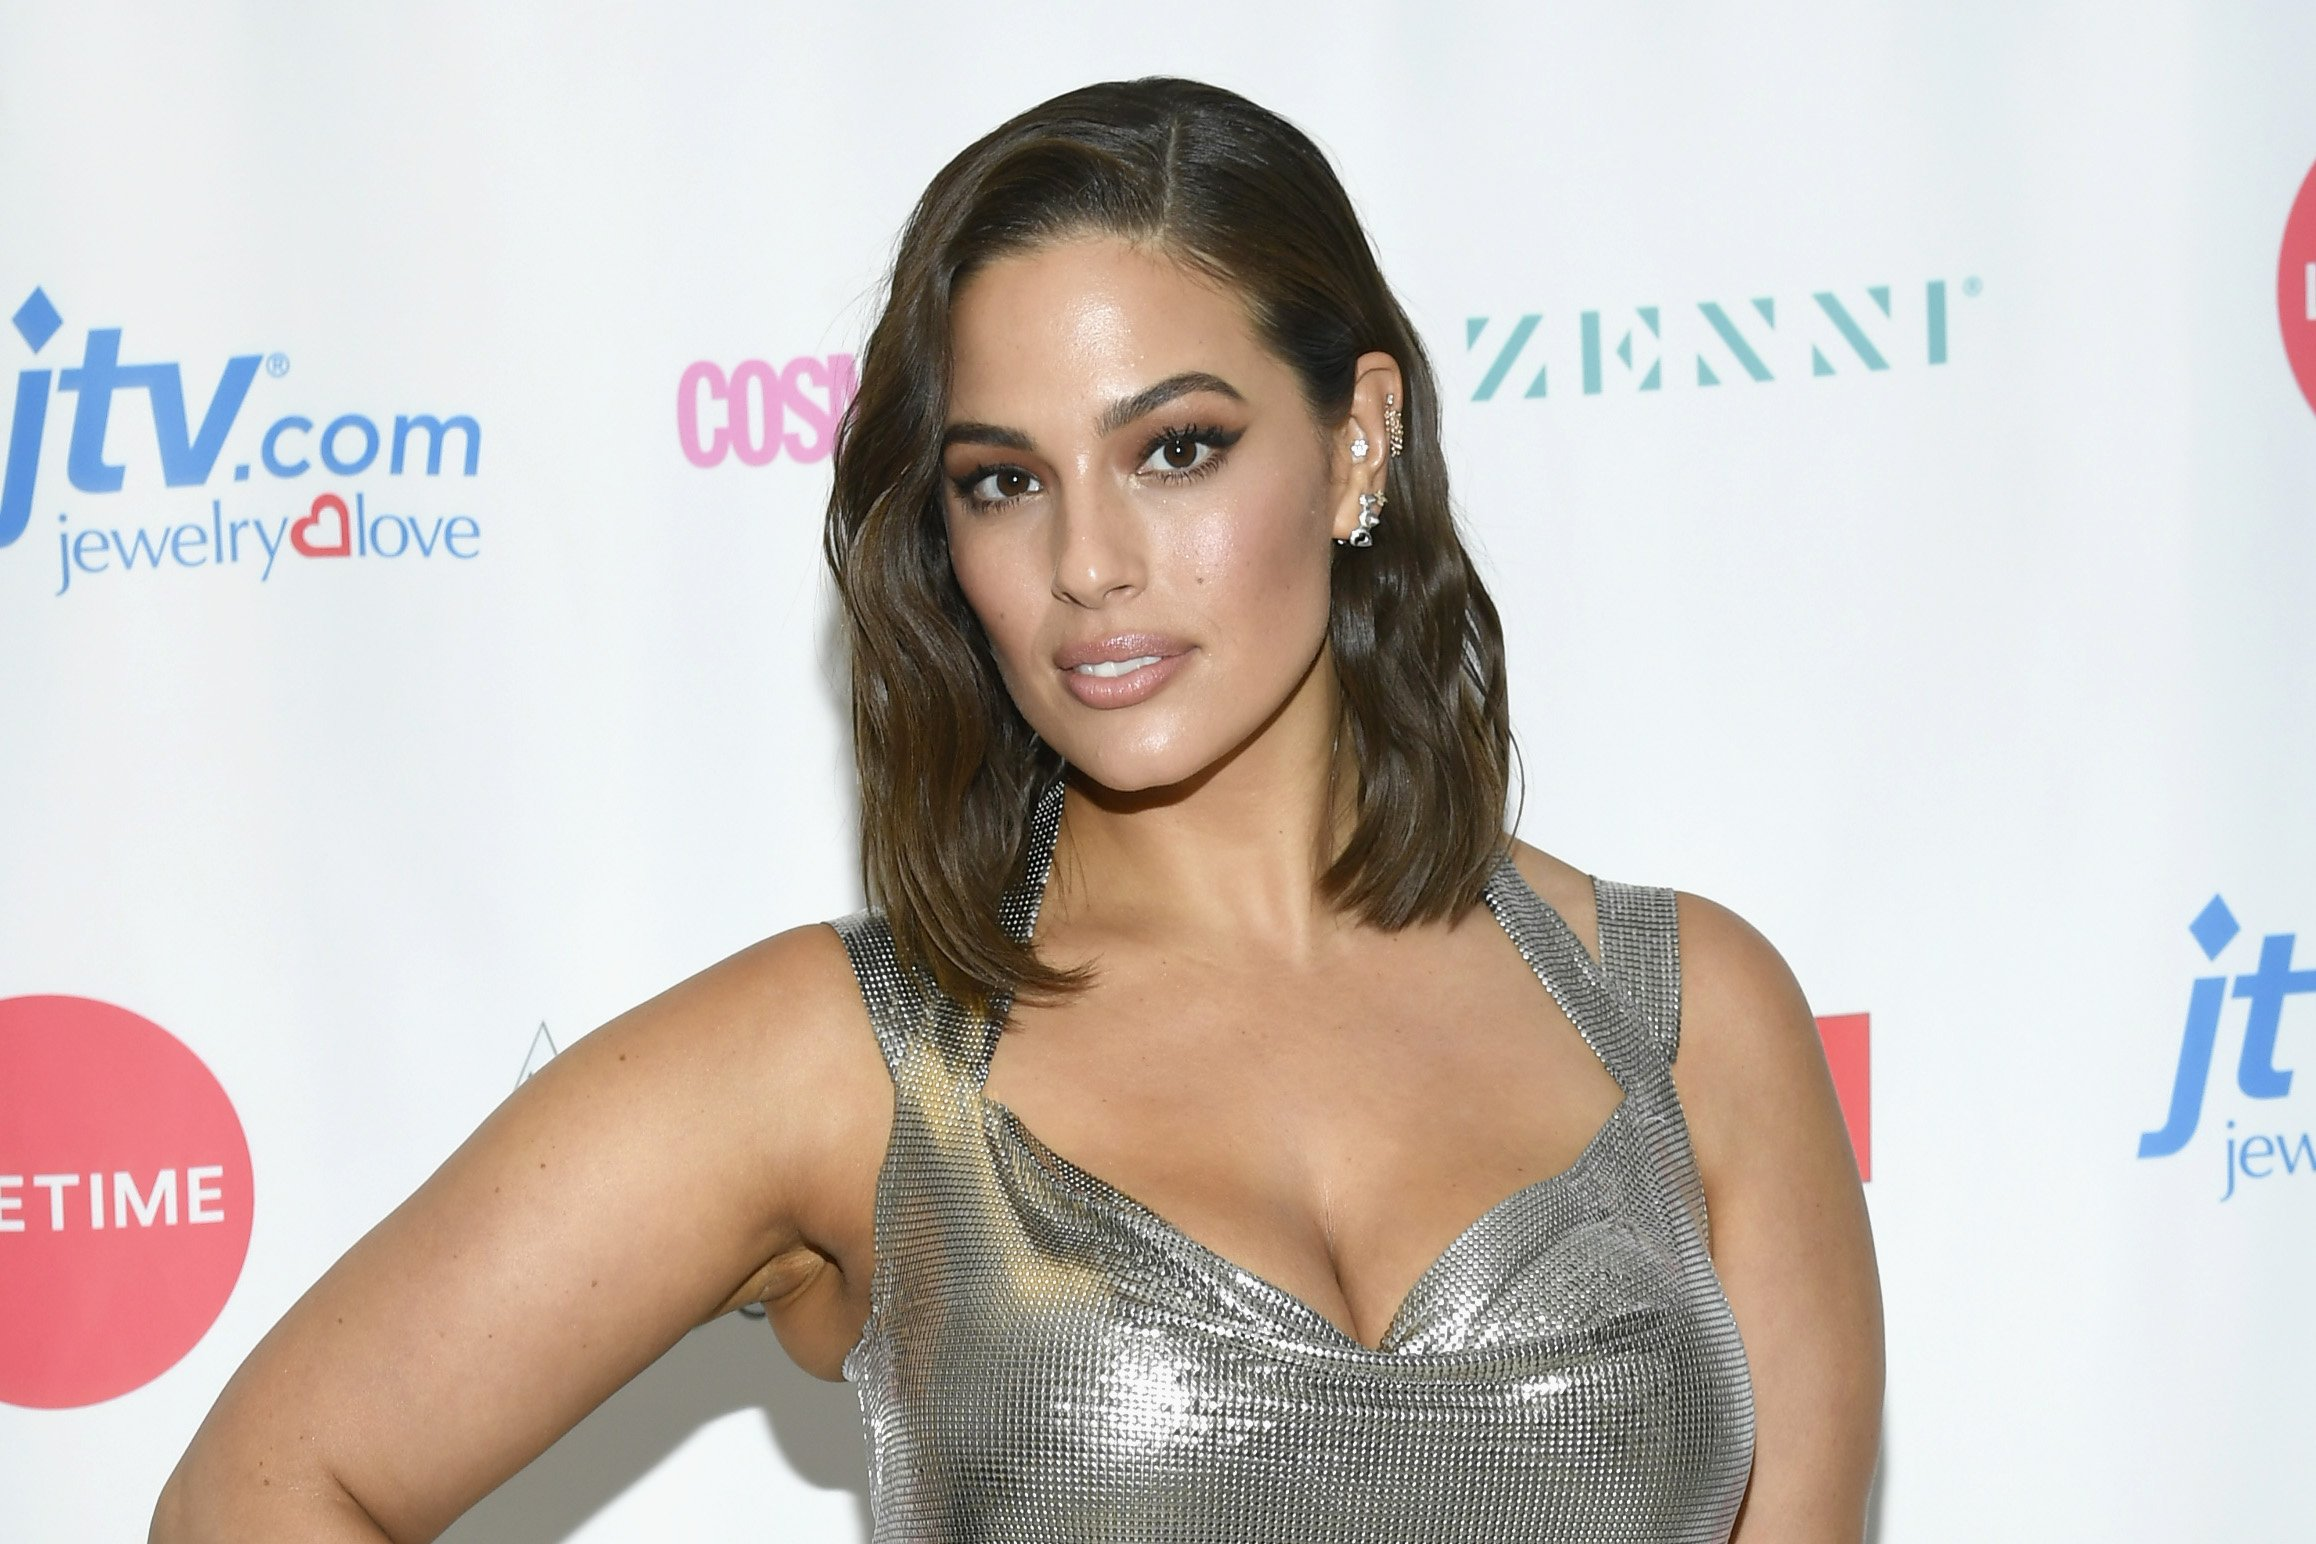 Model Ashley Graham attends Lifetime's American Beauty Star Season 2 Live Finale at Manhattan Center on March 27, 2019 in New York City   Photo: Getty Images